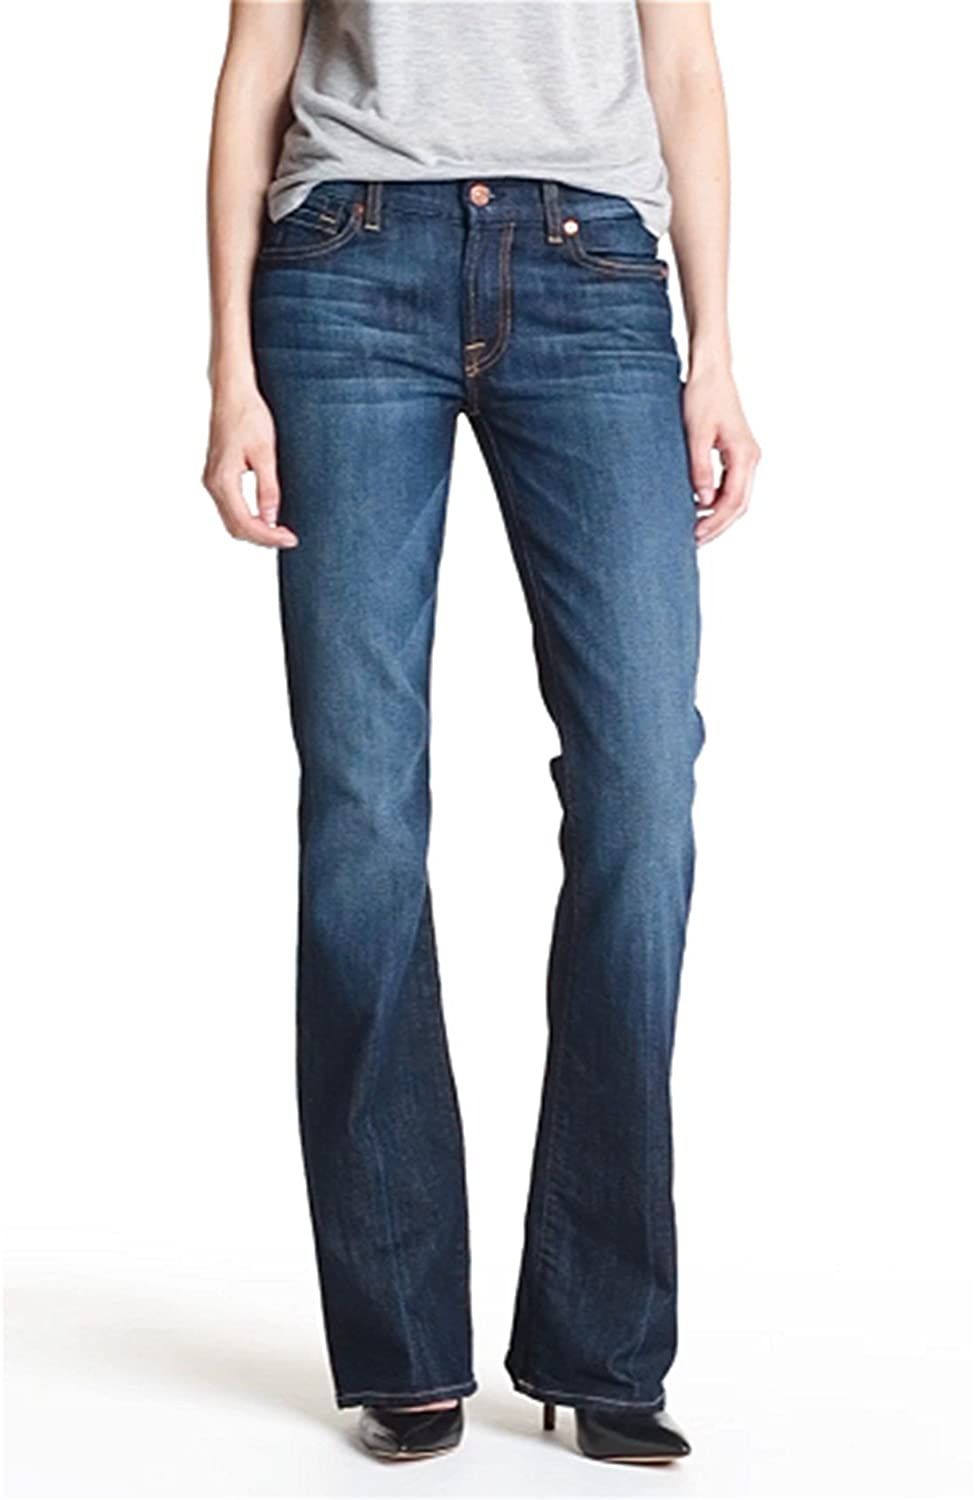 7 For All Mankind Women''s DSTM JU130N702S Denim Jeans